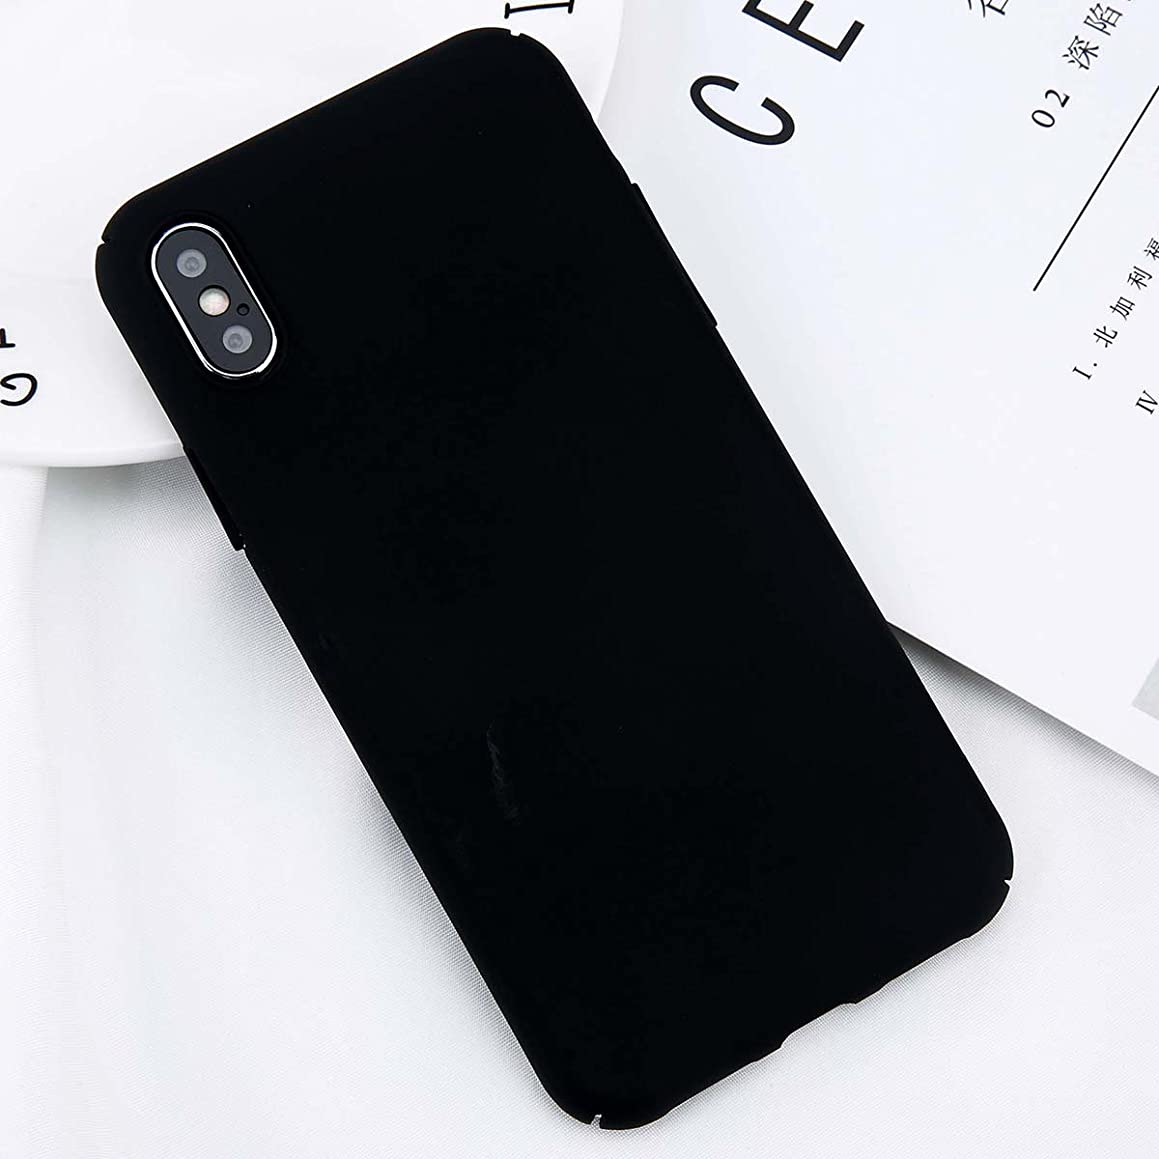 Fitted Cases - For Iphone X Xs Max Xr 8 7 Simple Plain Phone Case Slim Frosted Hard Pc Back Cover For Iphone 8 7 6 6s Plus 5 5s Cases - For Iphone Xs Black - Amplifier Car Tablet Mini Small